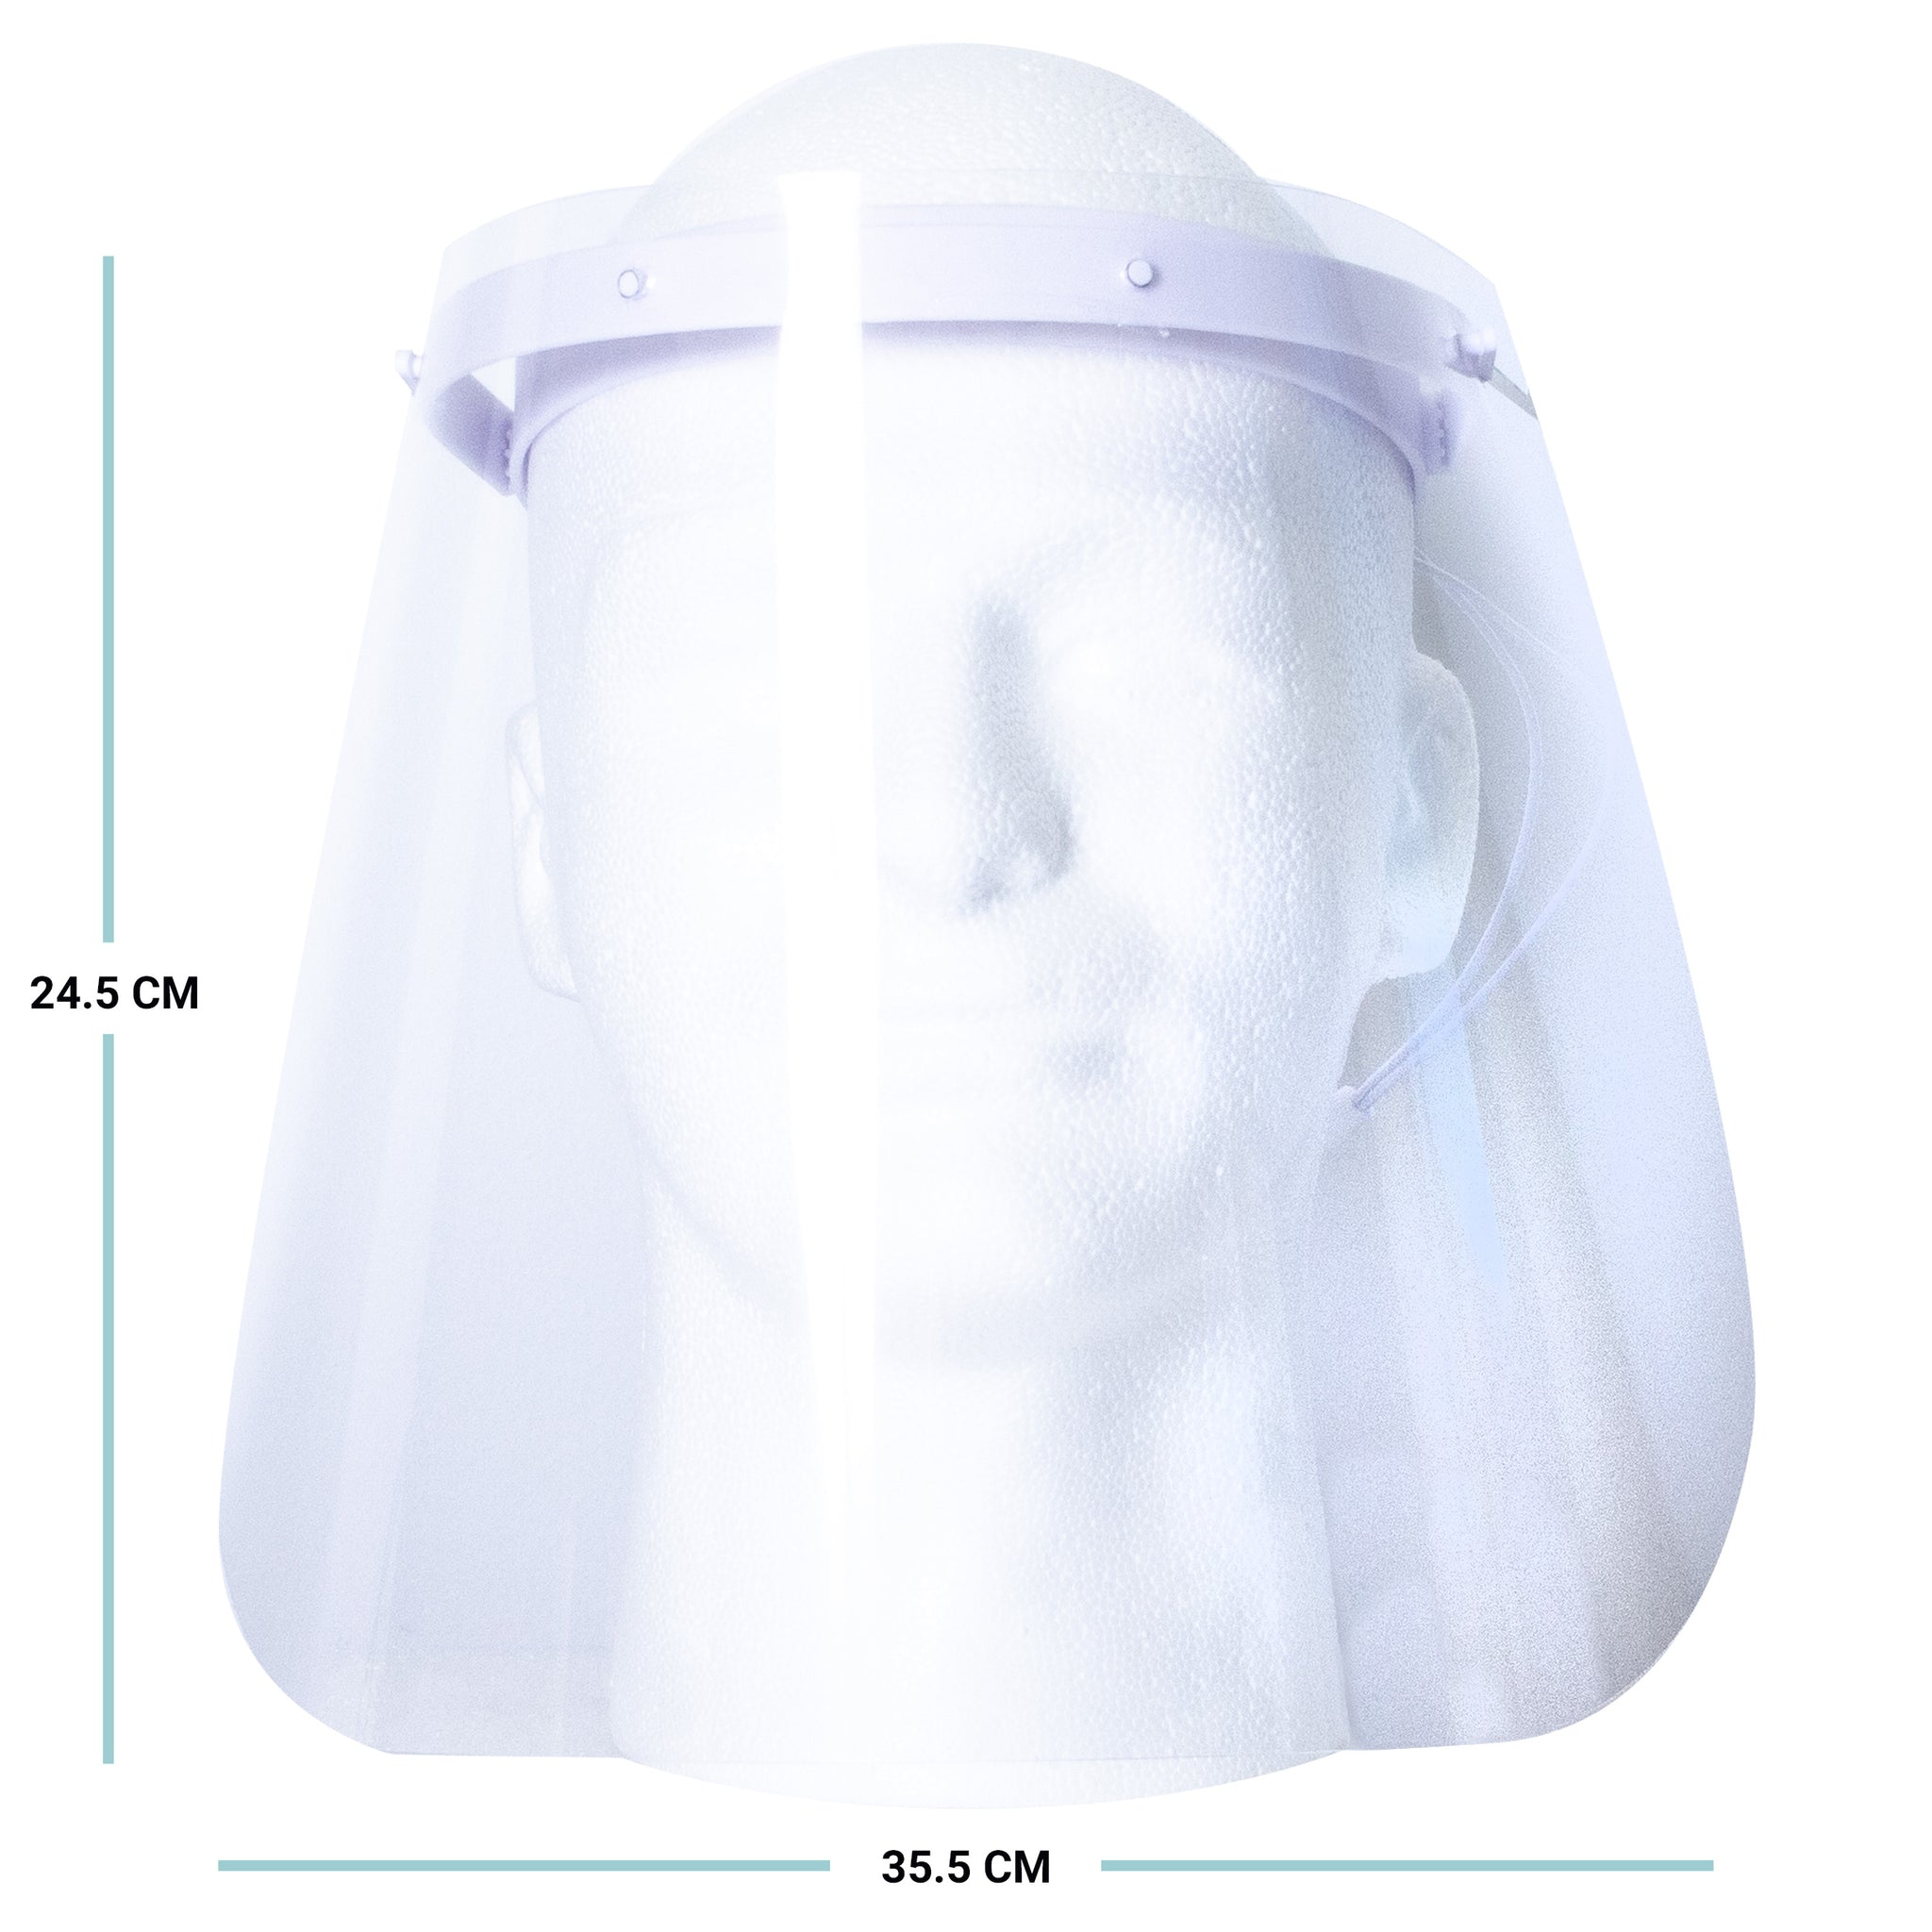 10 Adjustable Protective Face Shield Large Medium Bundle 2 Colors